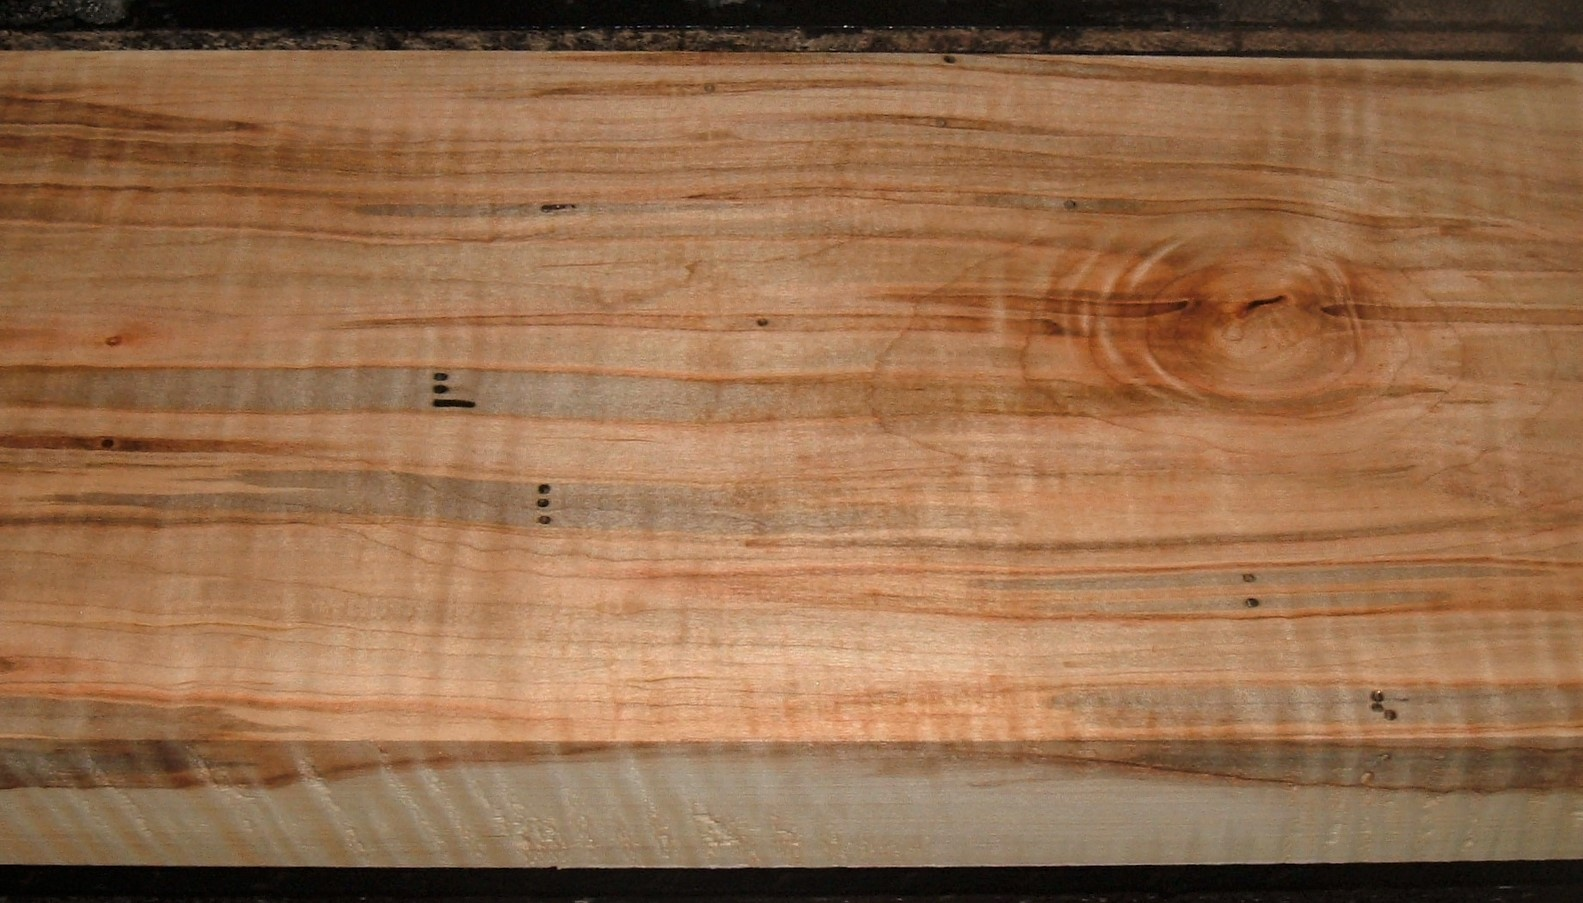 AM2103-33JJ, 1-7/8x6-13/16x45, Curly Tiger Ambrosia Wormy Maple